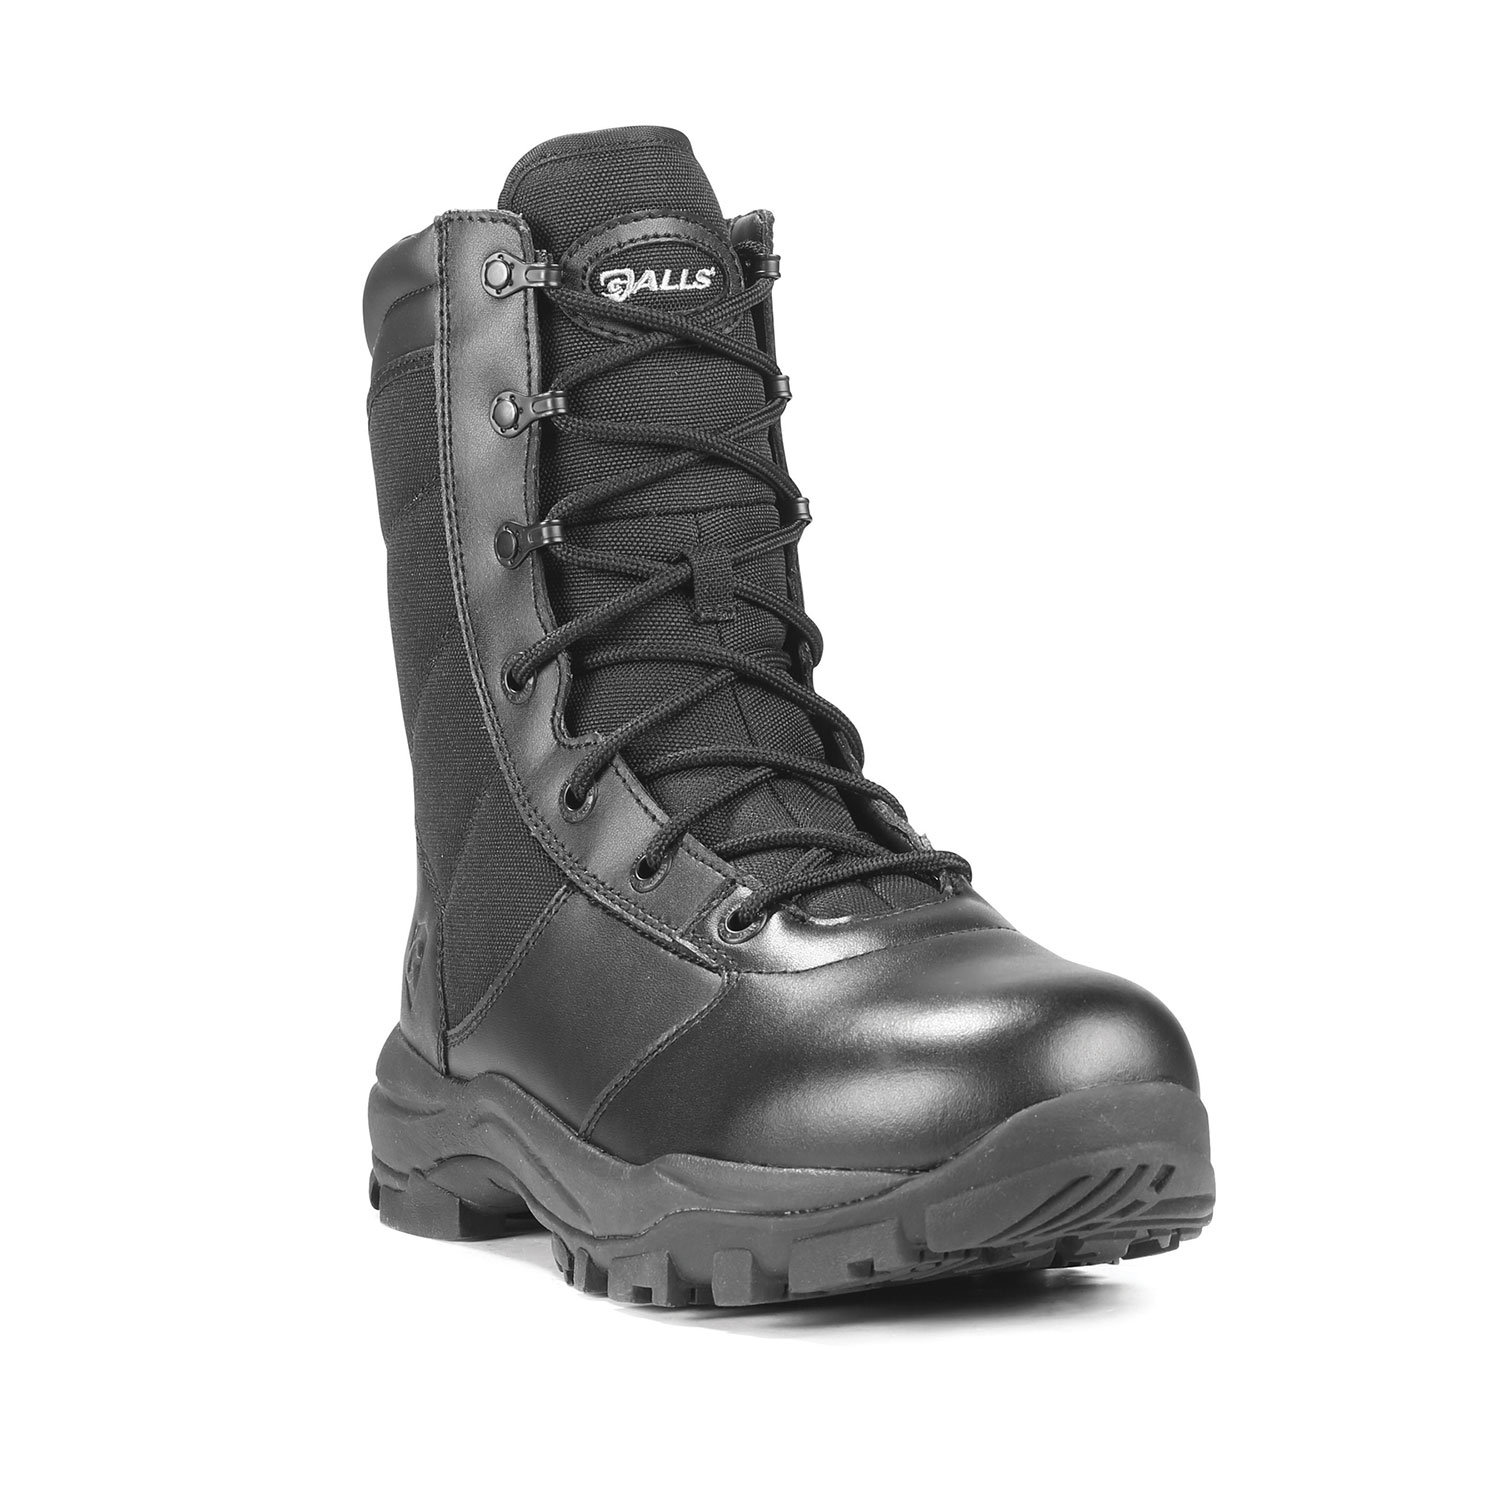 "Galls 8"" Duty Boot"